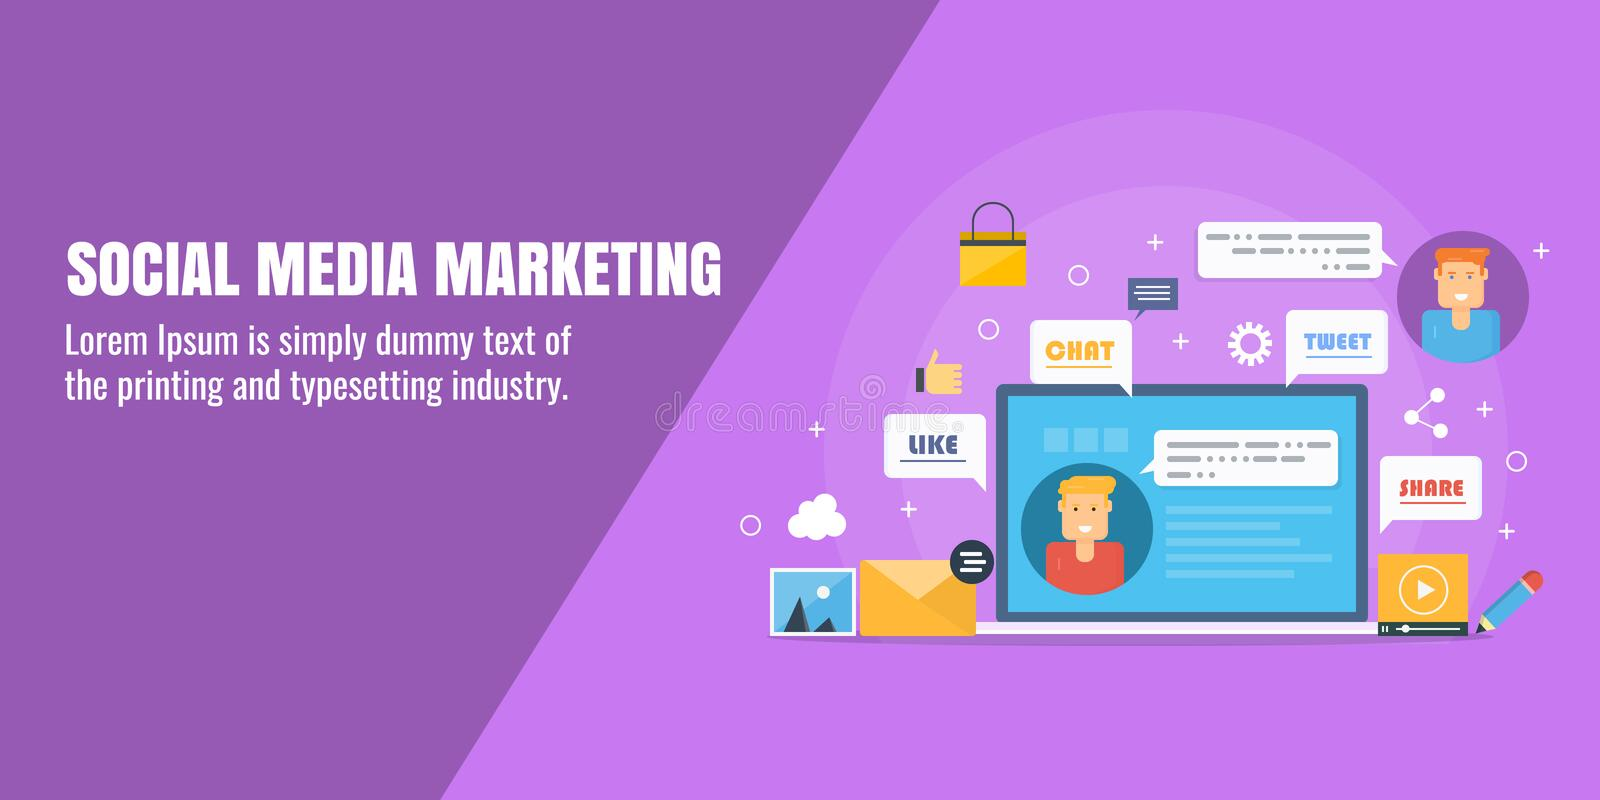 Social media marketing, digital marketing campaign, online advertisement, network building, social content sharing concept. stock illustration